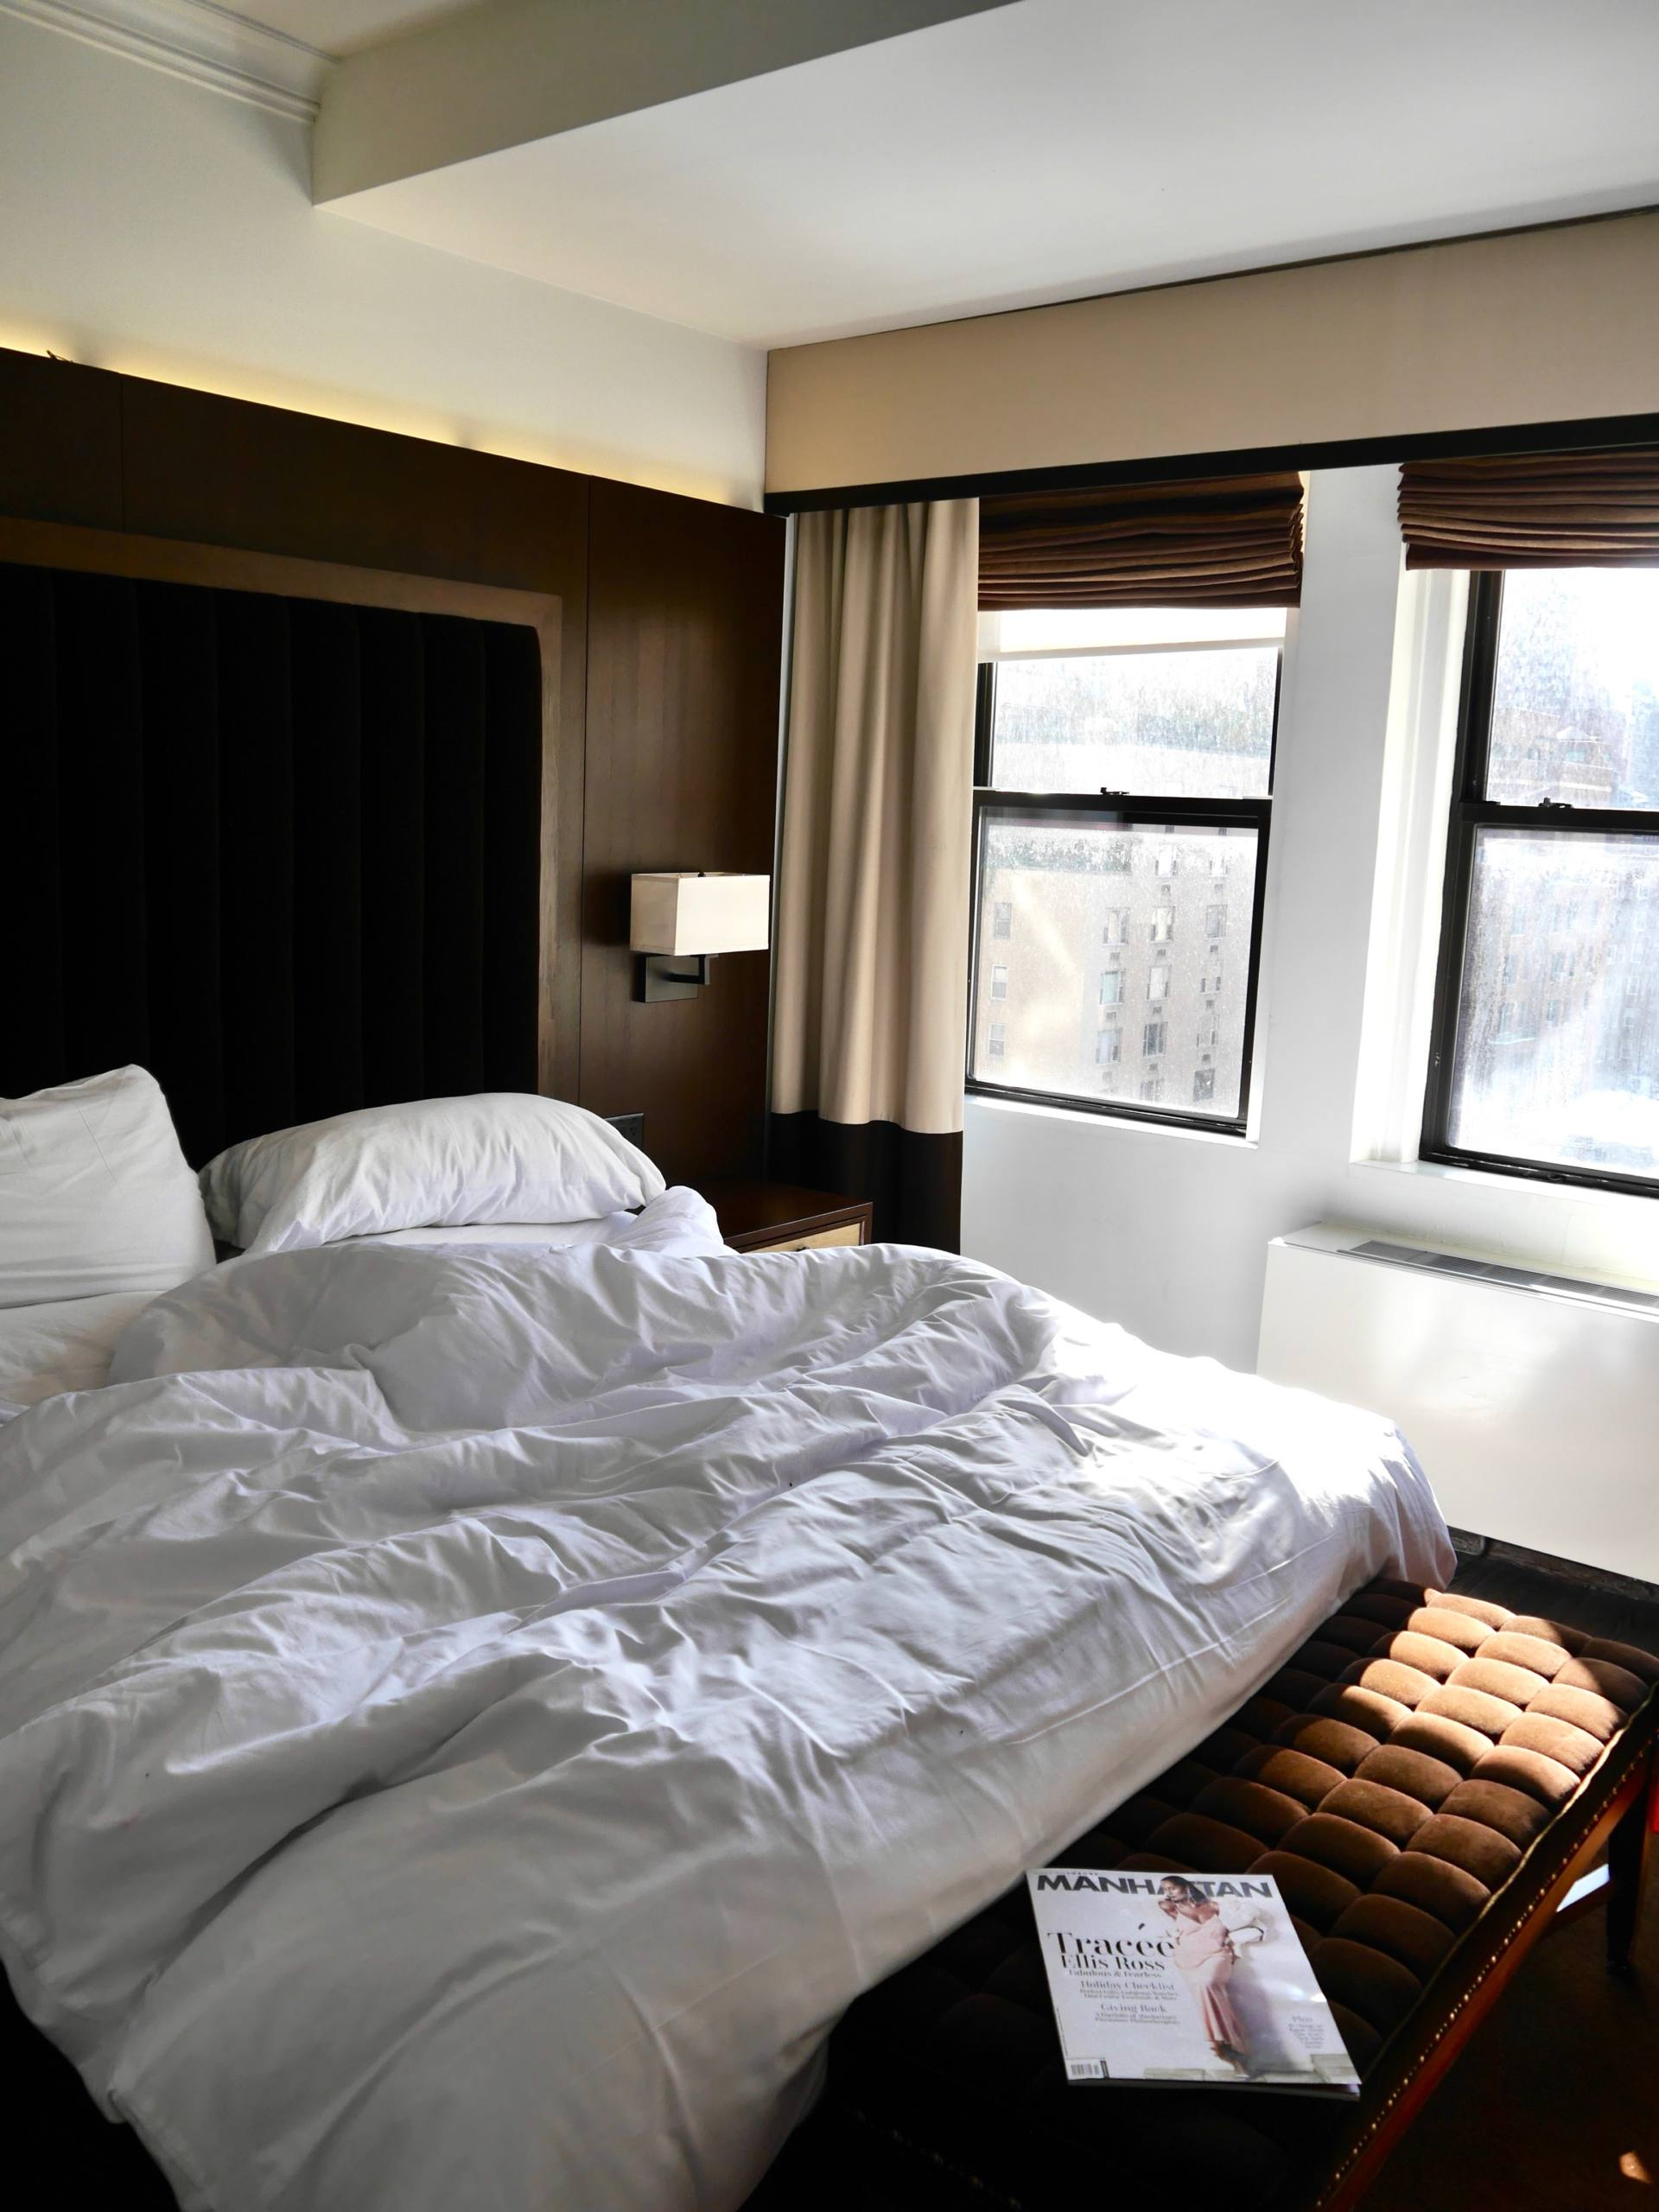 New York Hotel Hotels Buy Outright